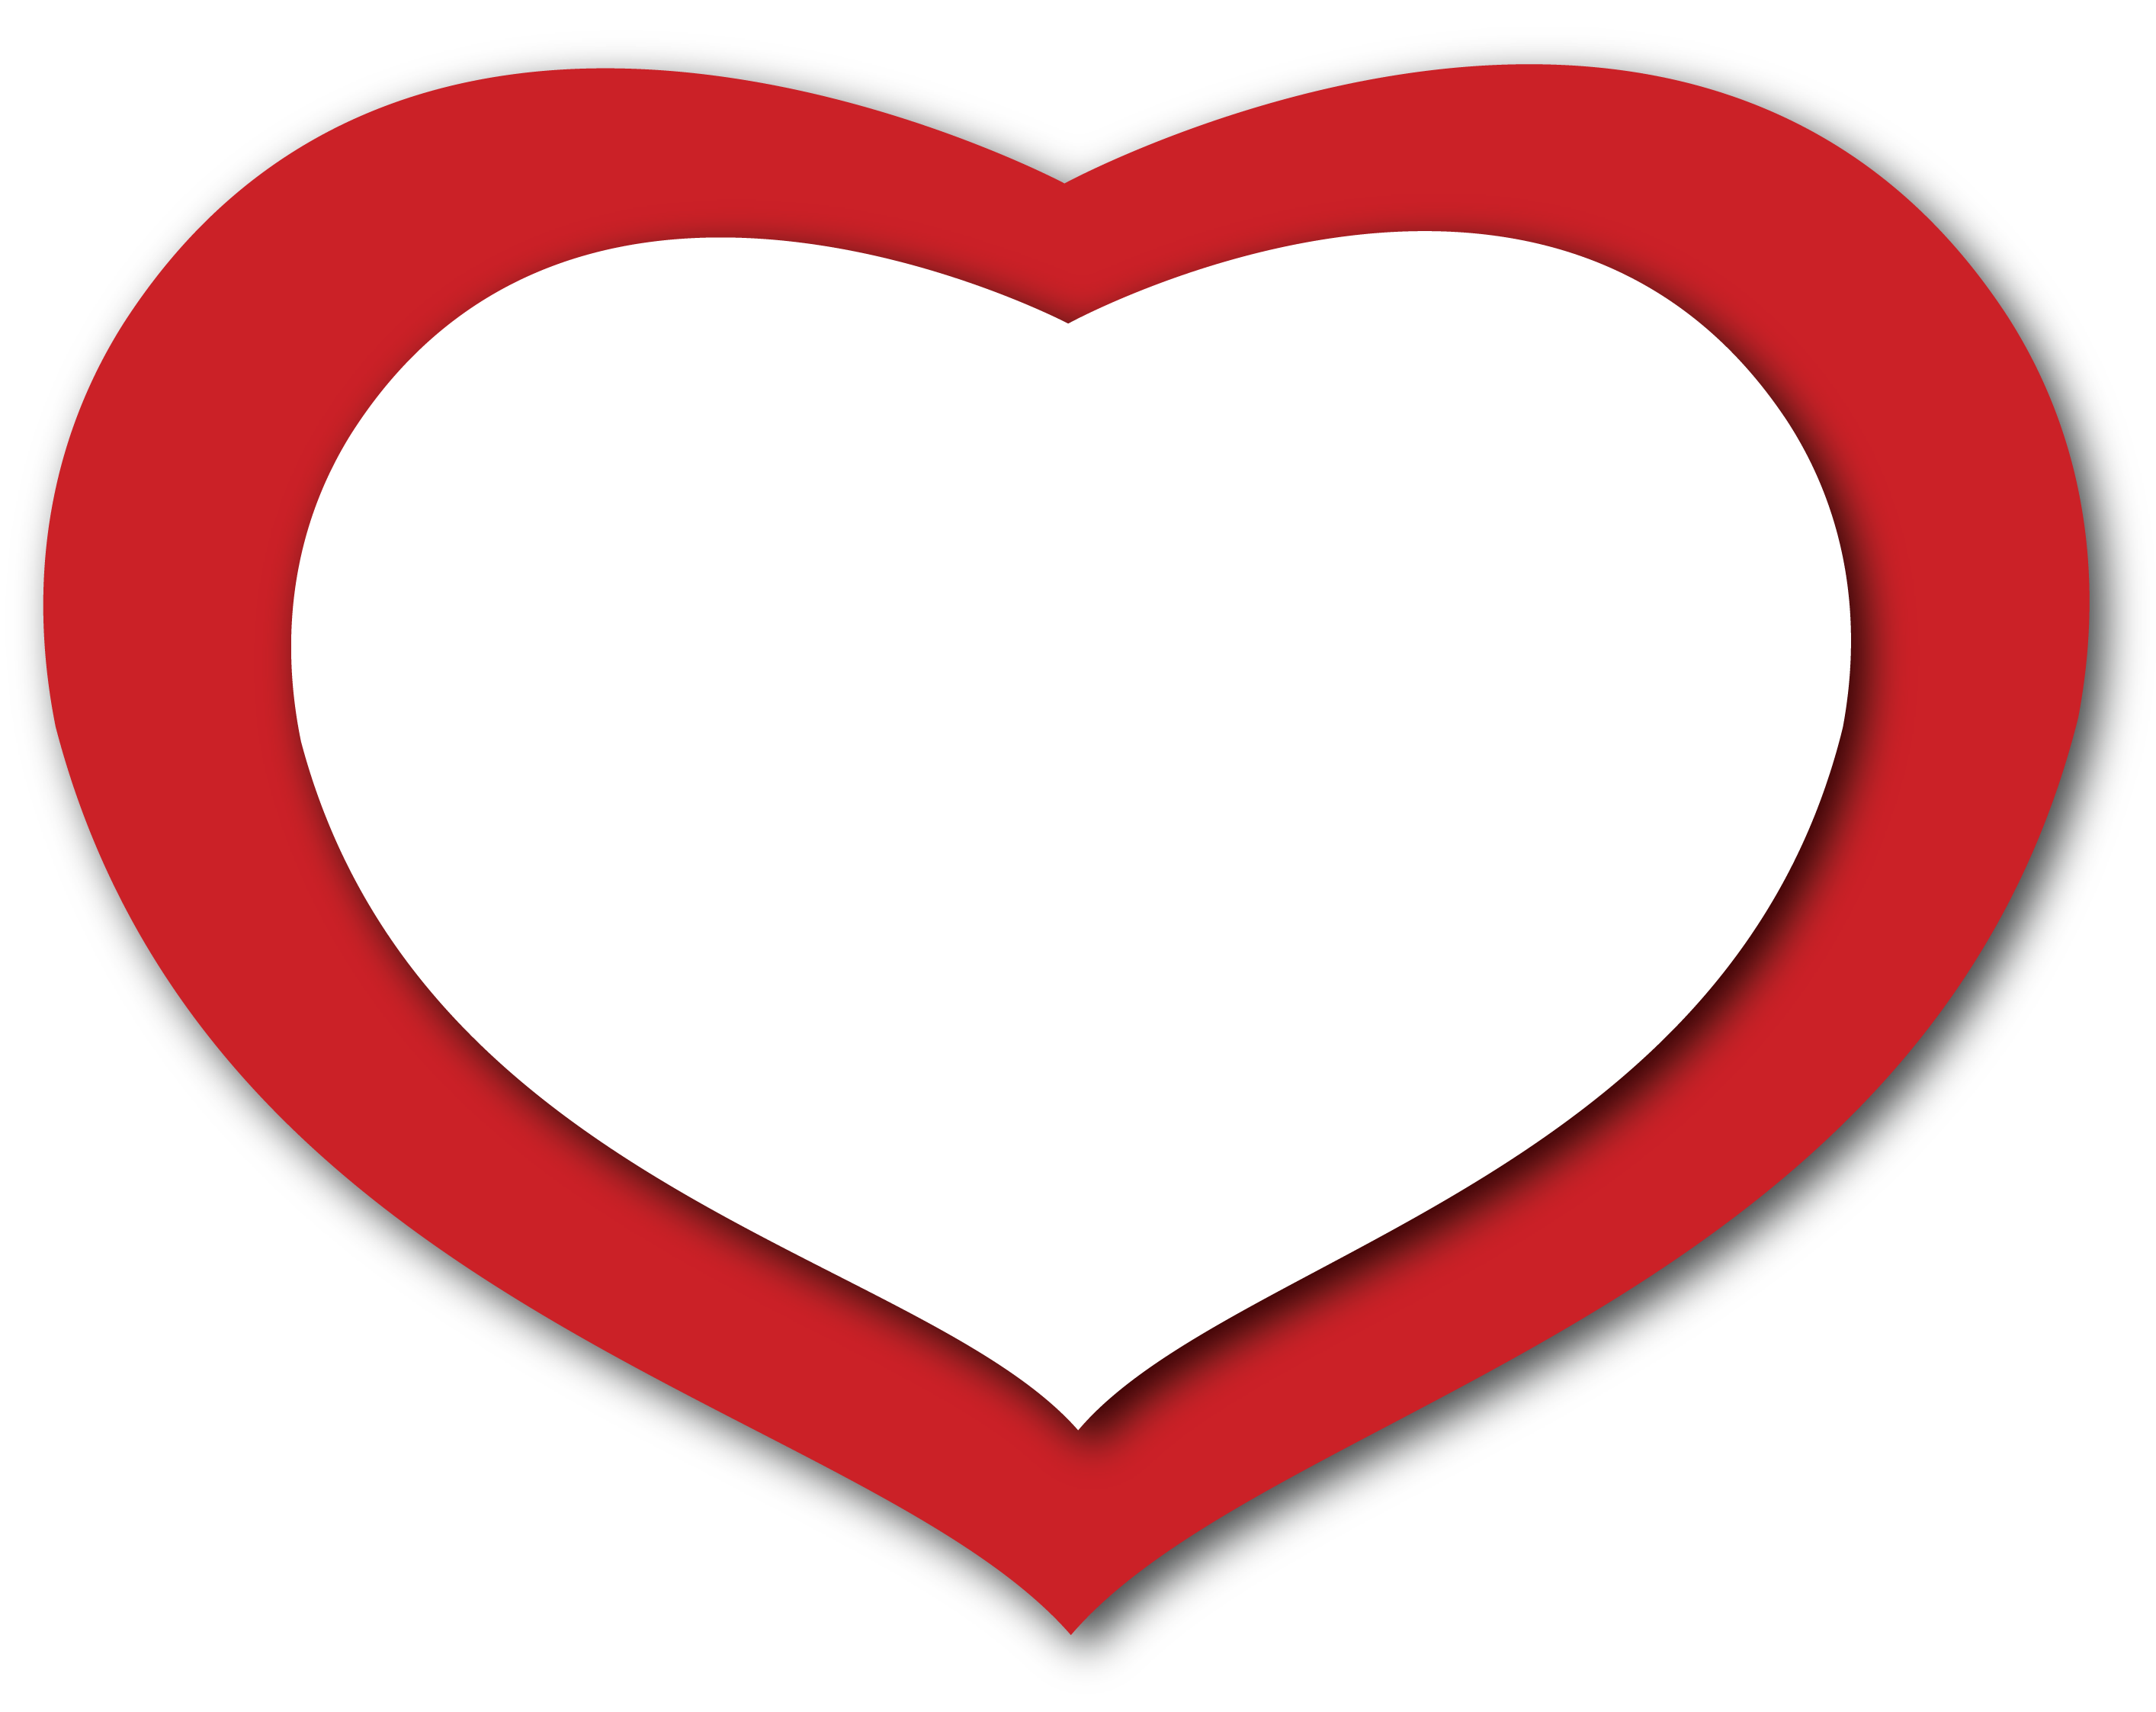 Heart png transparent background. Red and white clipart